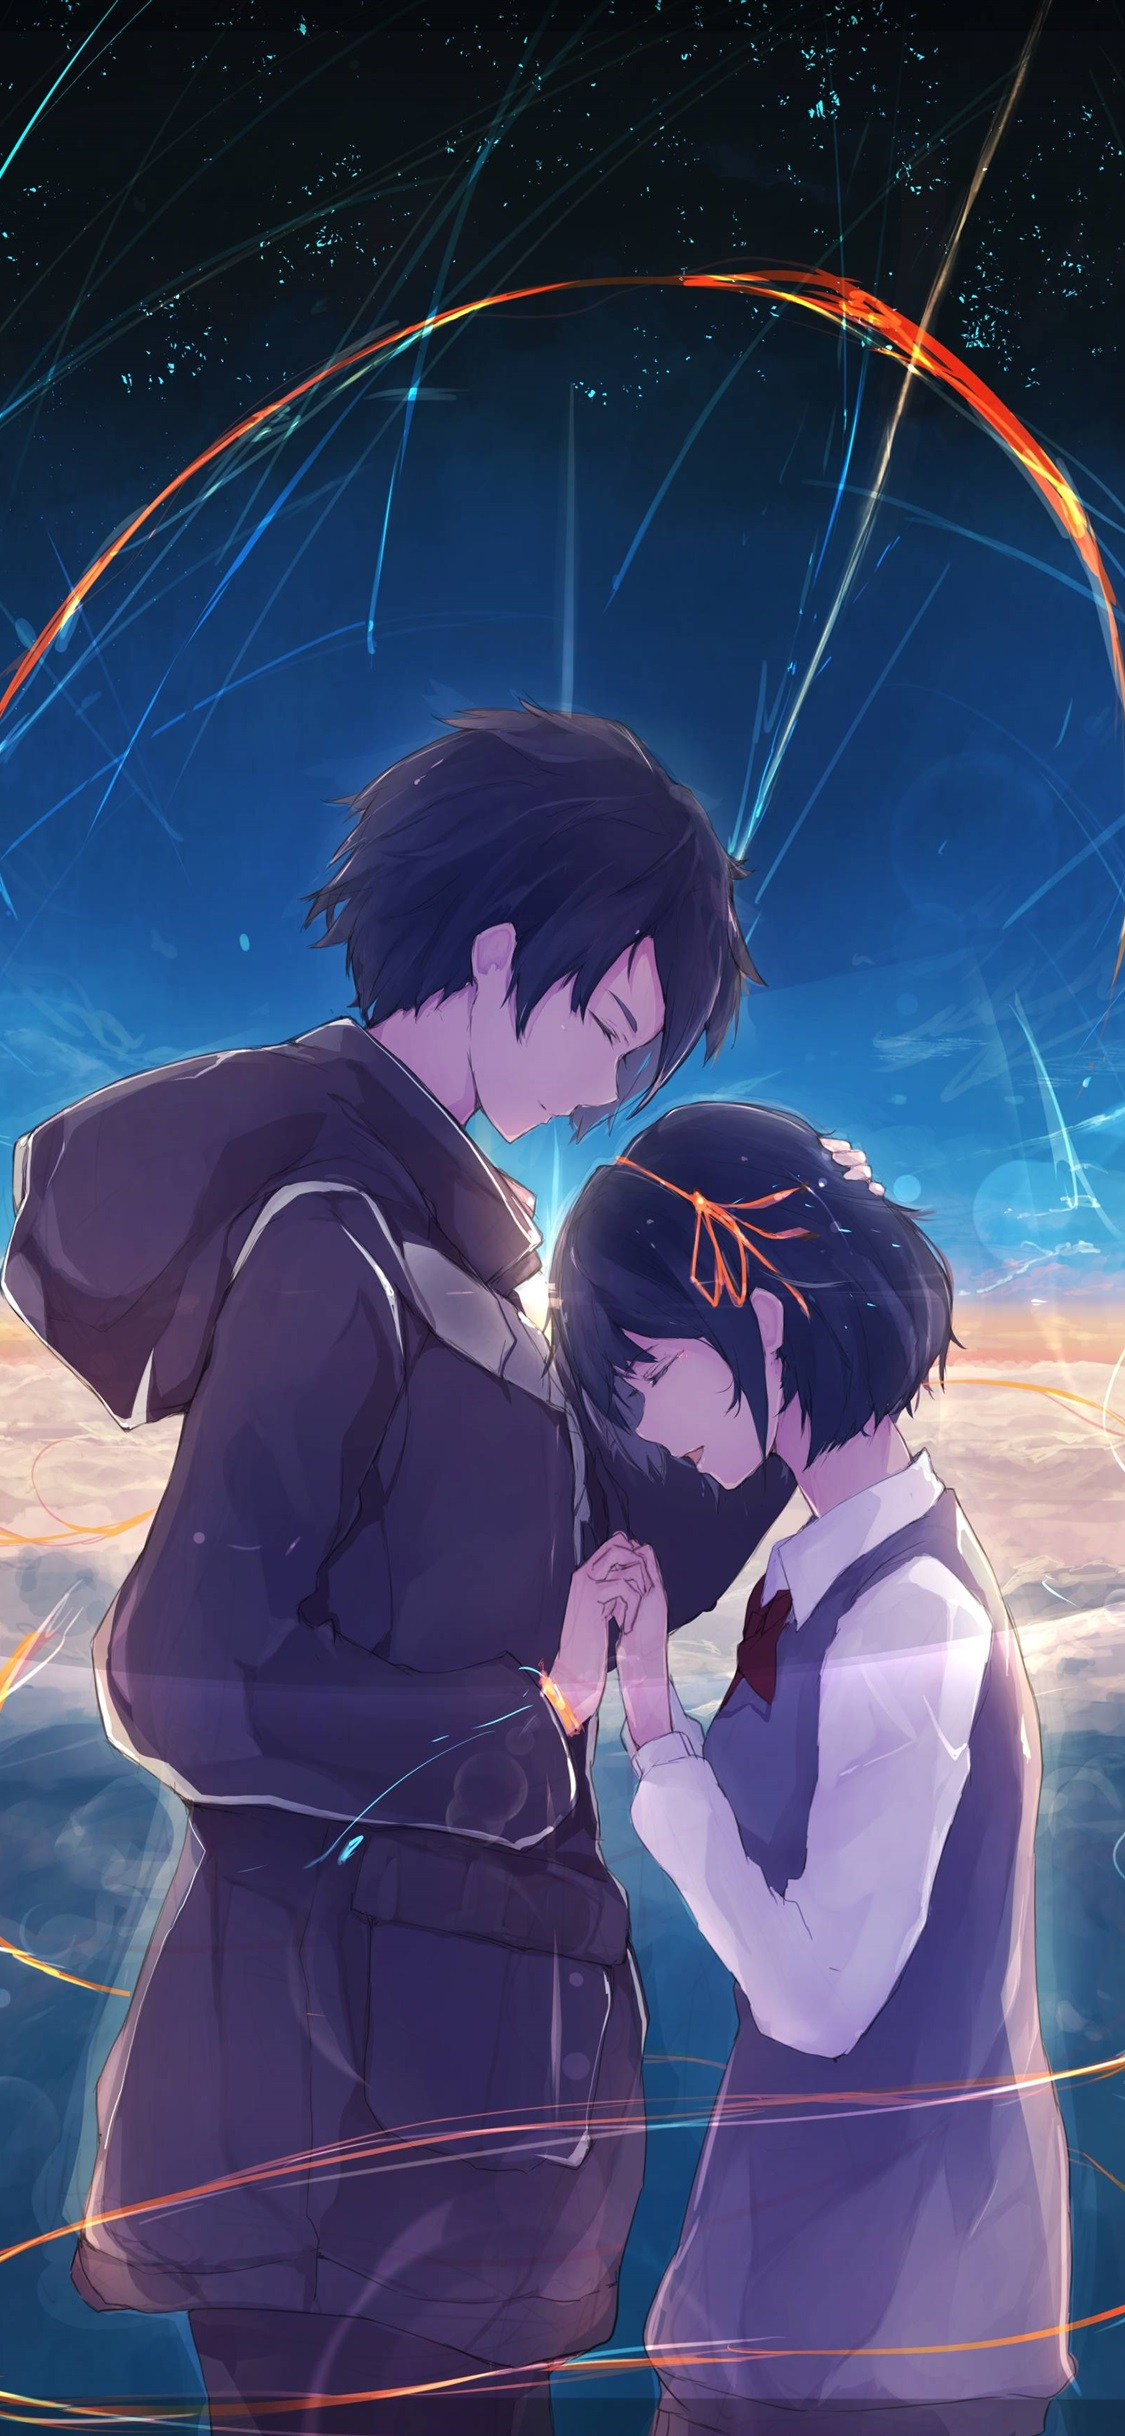 Your Name Happiness Boy And Girl Anime 1125x2436 Iphone 11 Pro